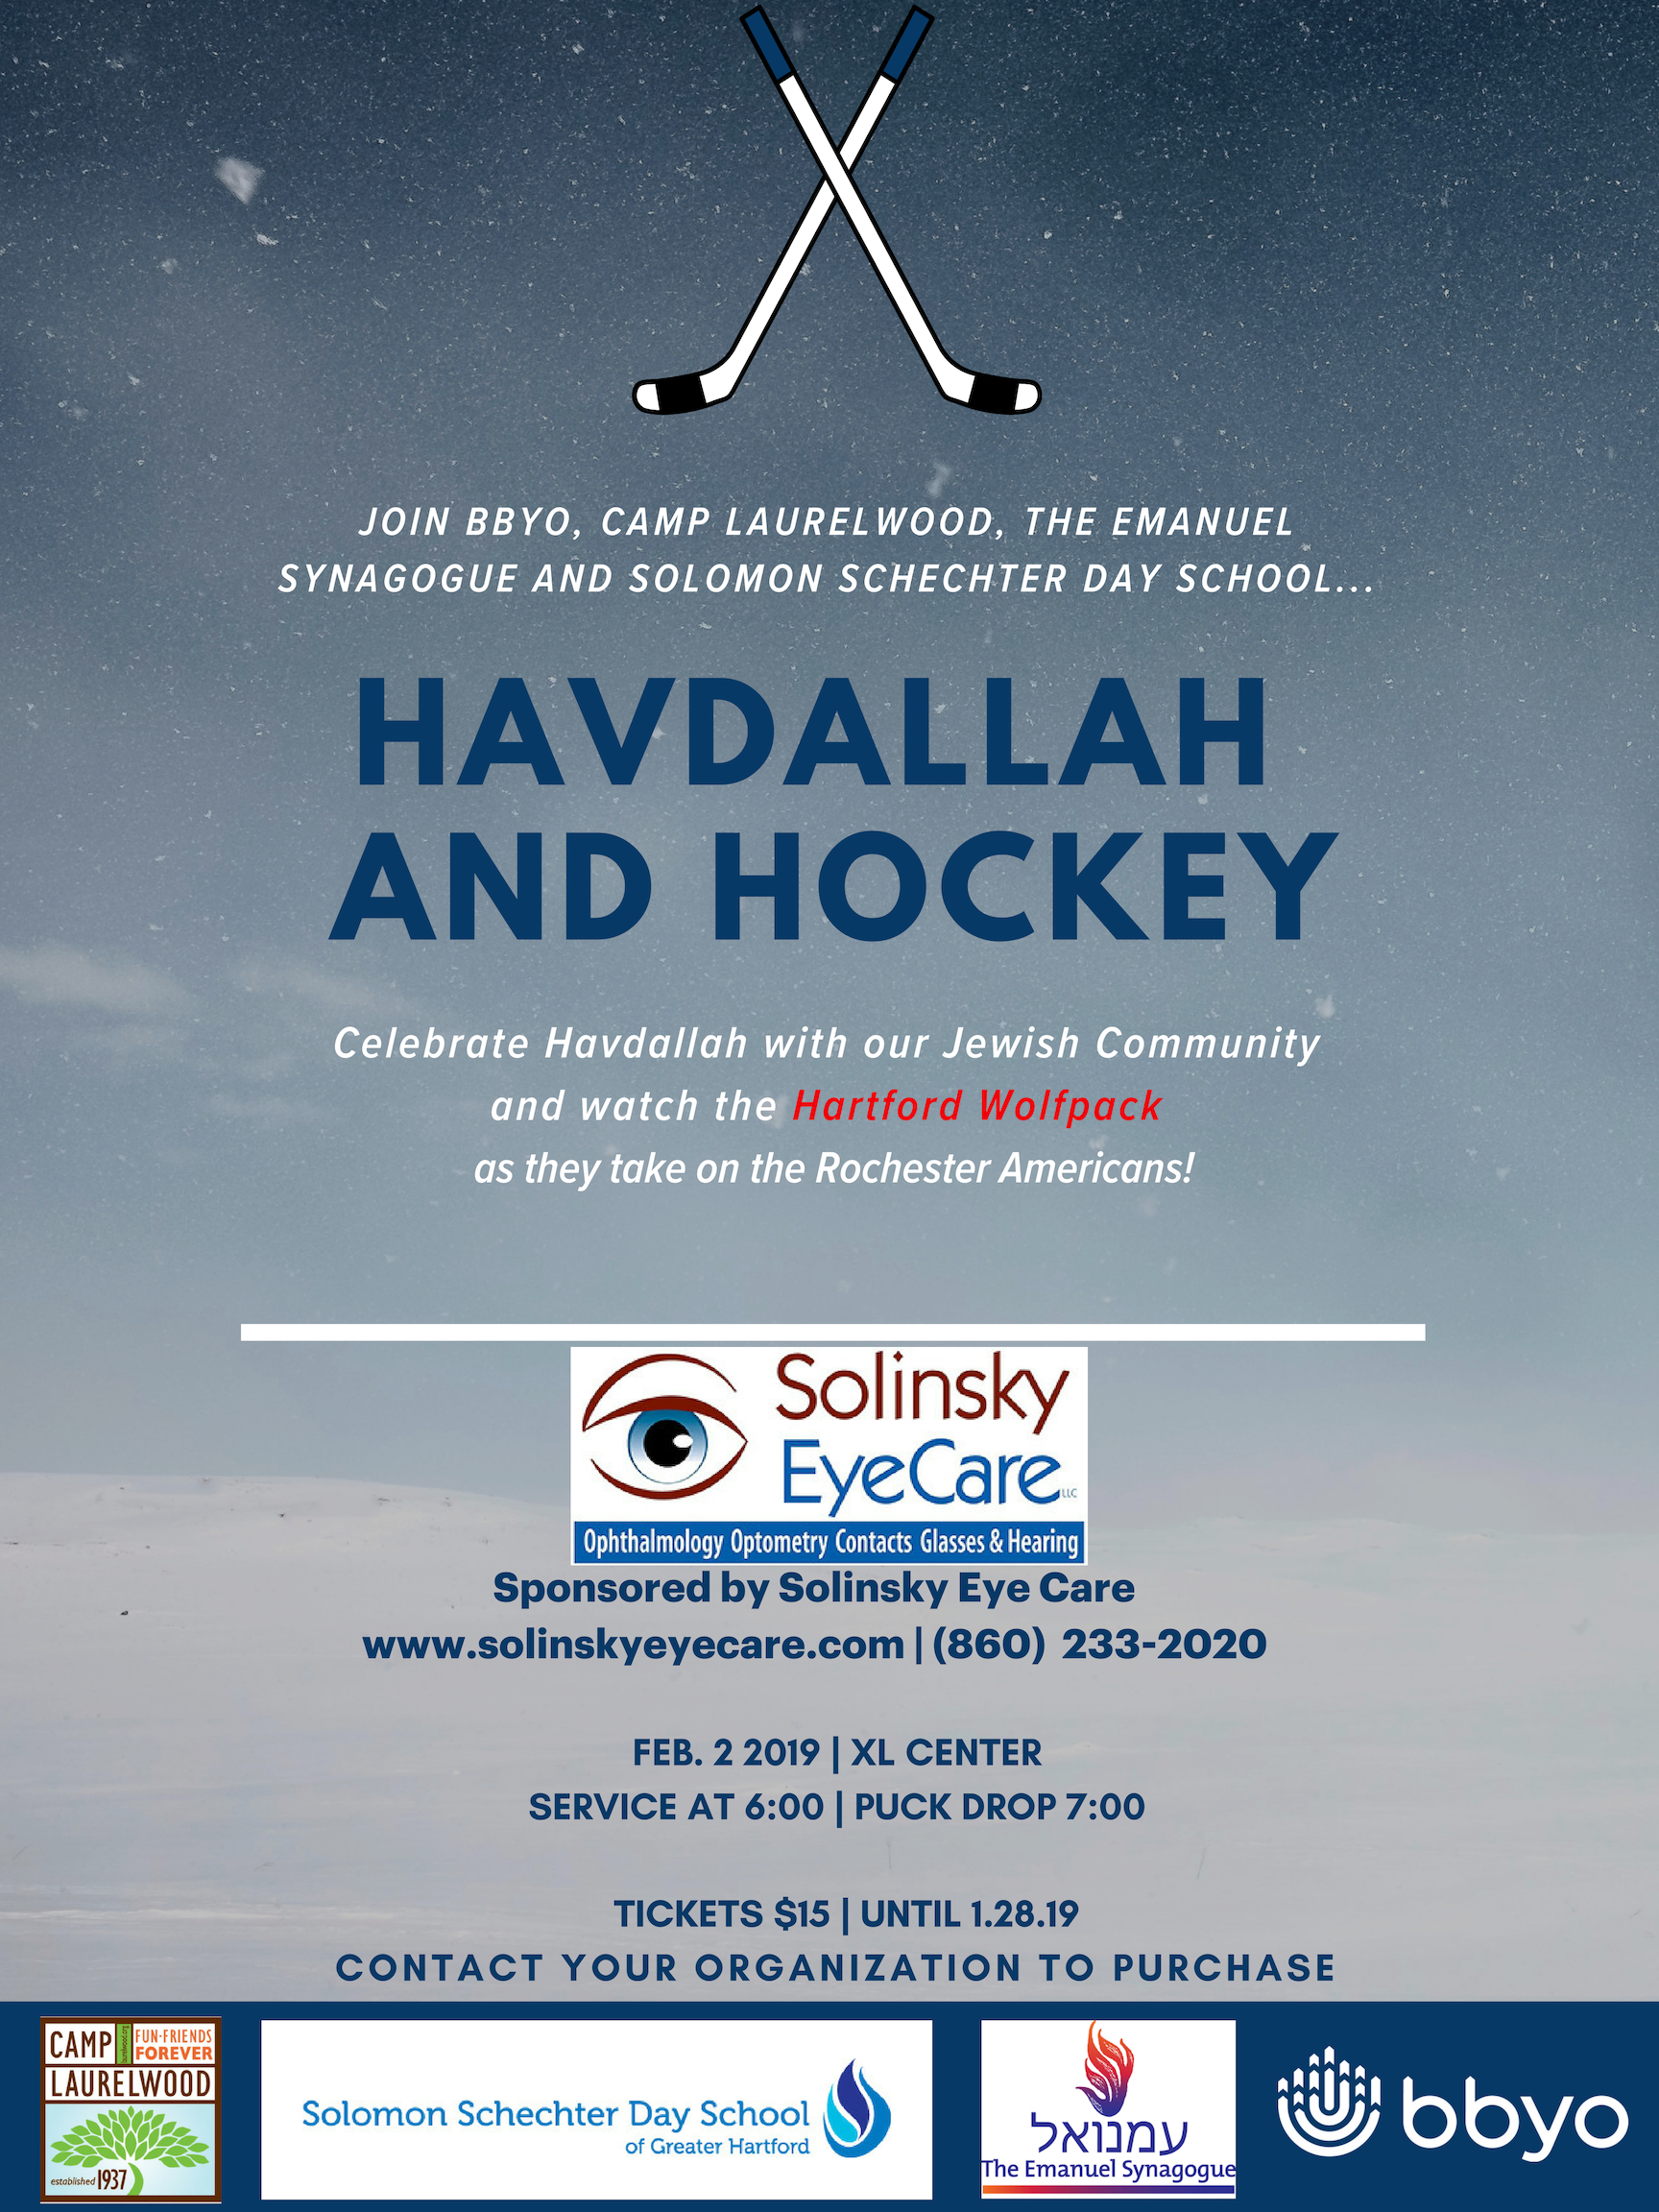 Havdallah and Hockey image